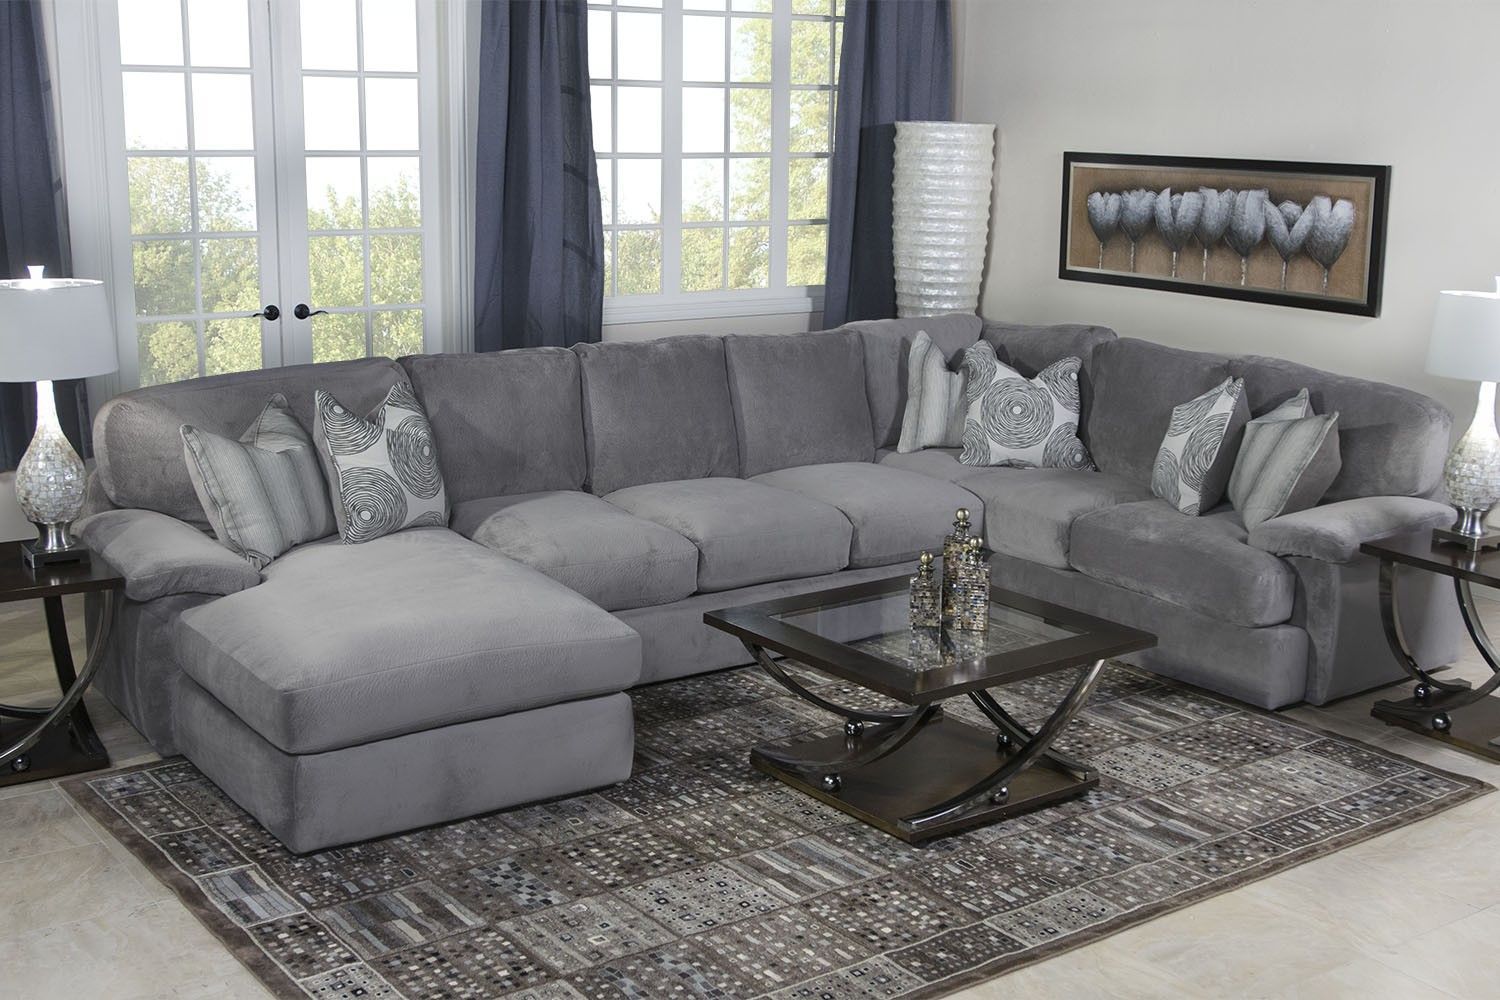 Key west sectional living room in gray living room mor for Sectional living room sets